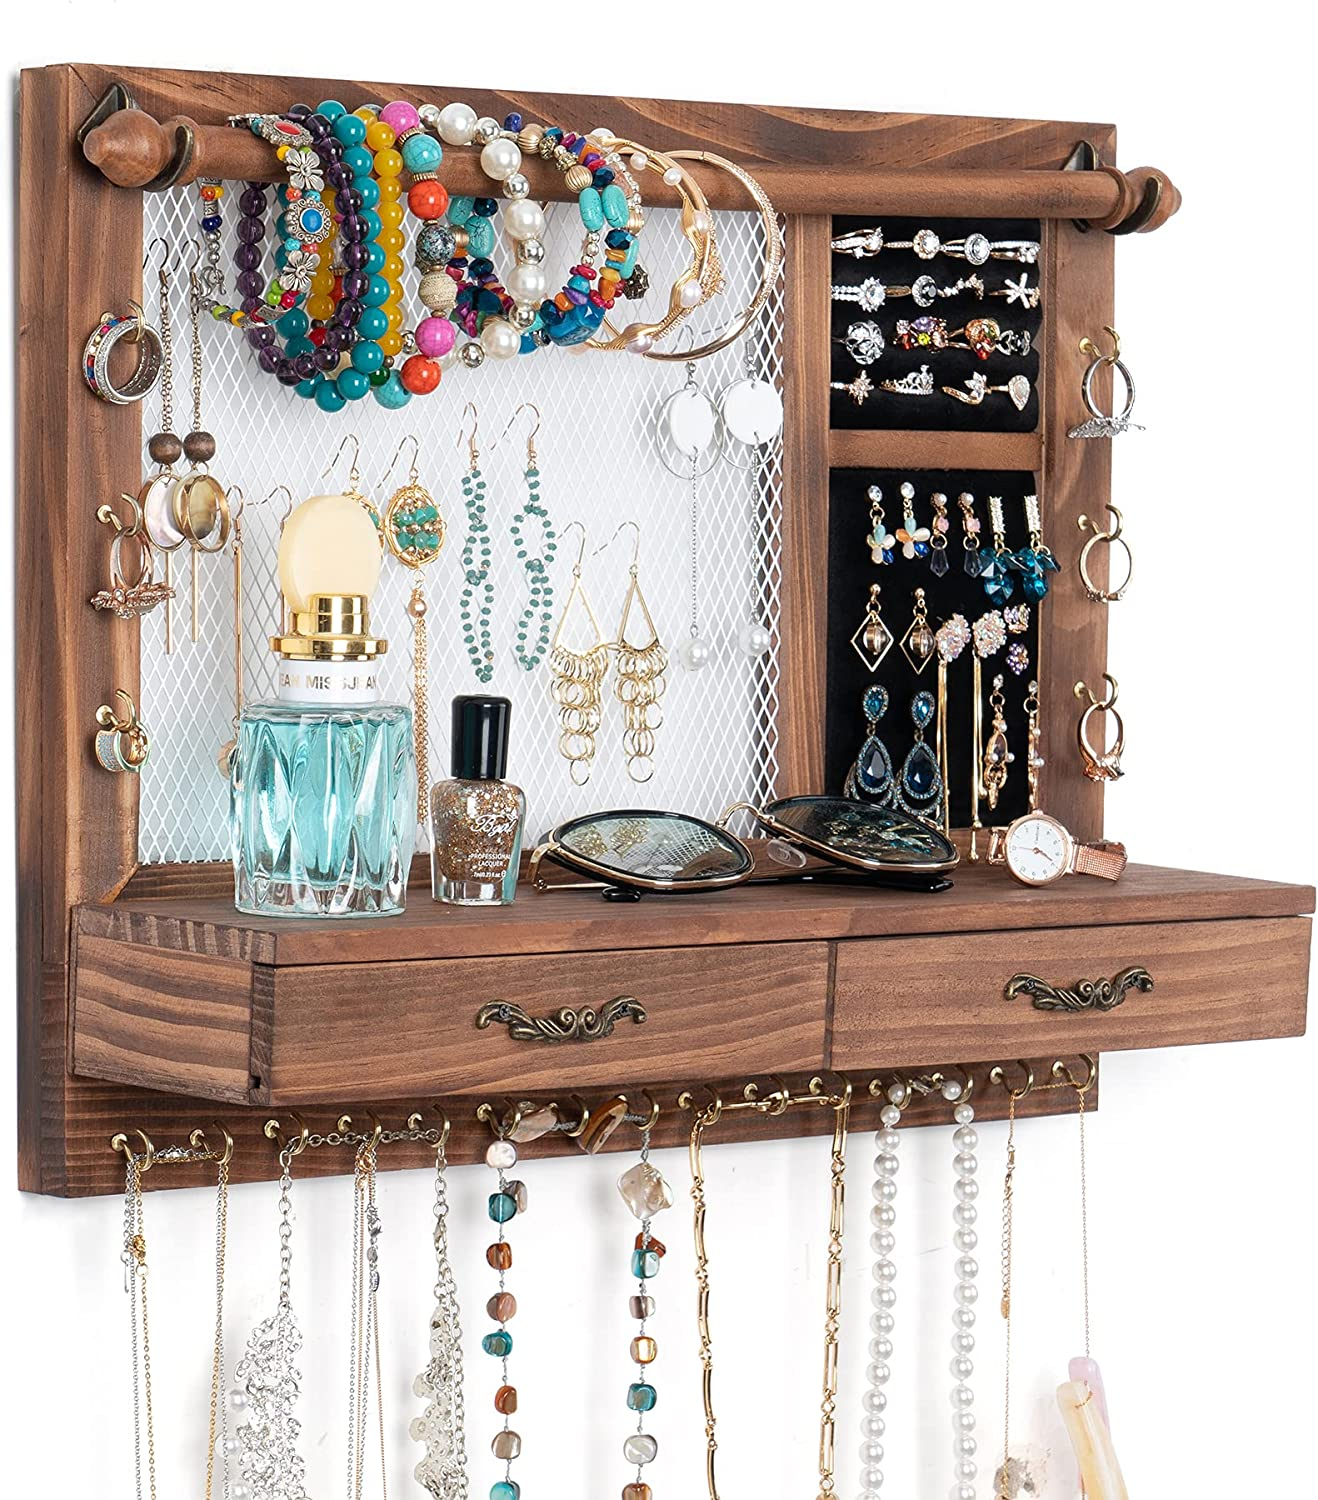 JAZUIHA Wall Jewelry Organizer with 70% All stores are sold OFF Outlet Rod Ru Bracelet Mounted